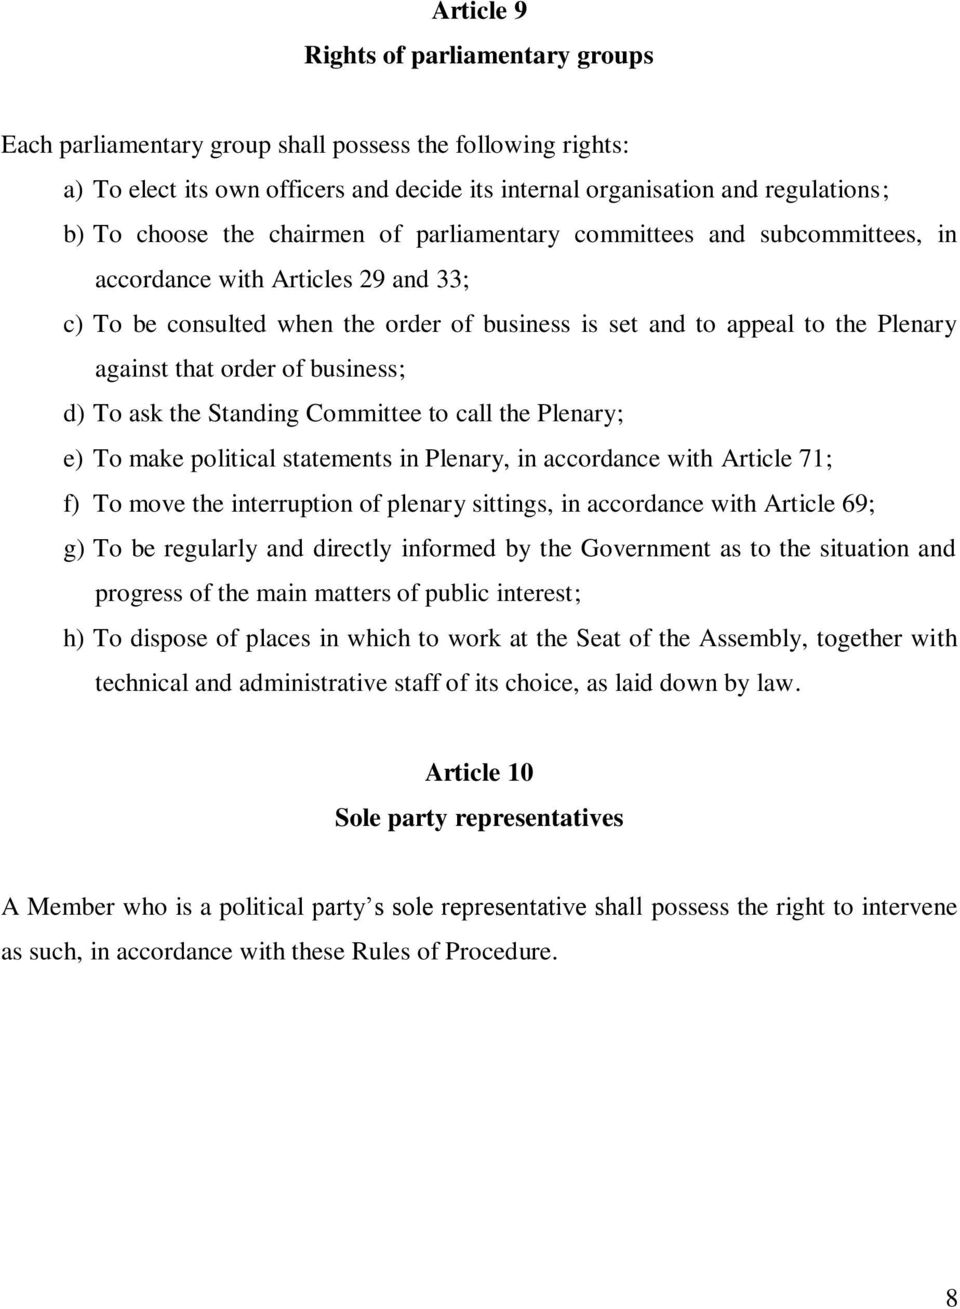 of business; d) To ask the Standing Committee to call the Plenary; e) To make political statements in Plenary, in accordance with Article 71; f) To move the interruption of plenary sittings, in